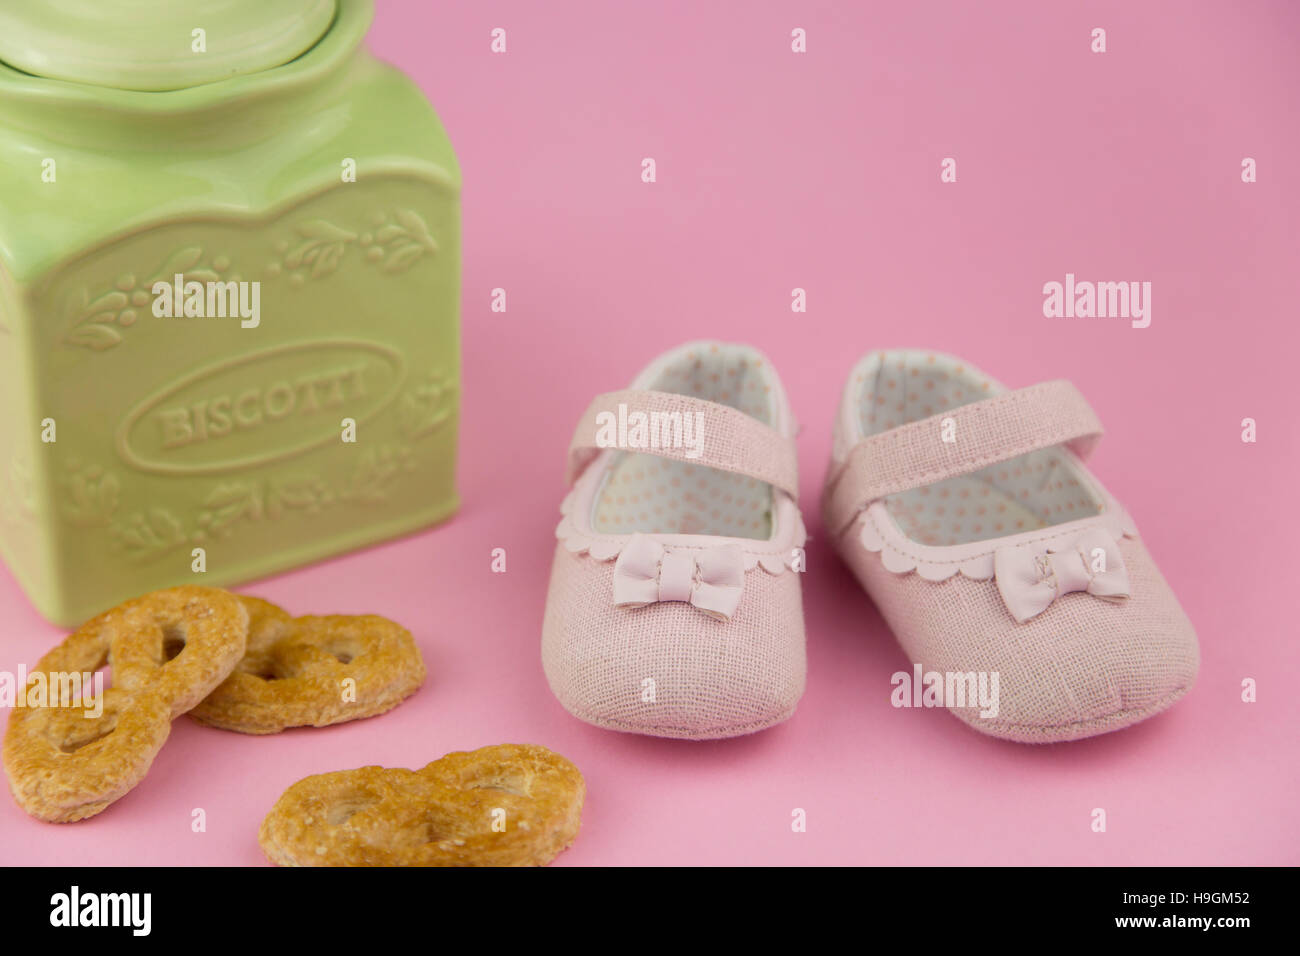 portrait in provencal style of a pair of little girl shoes - Stock Image